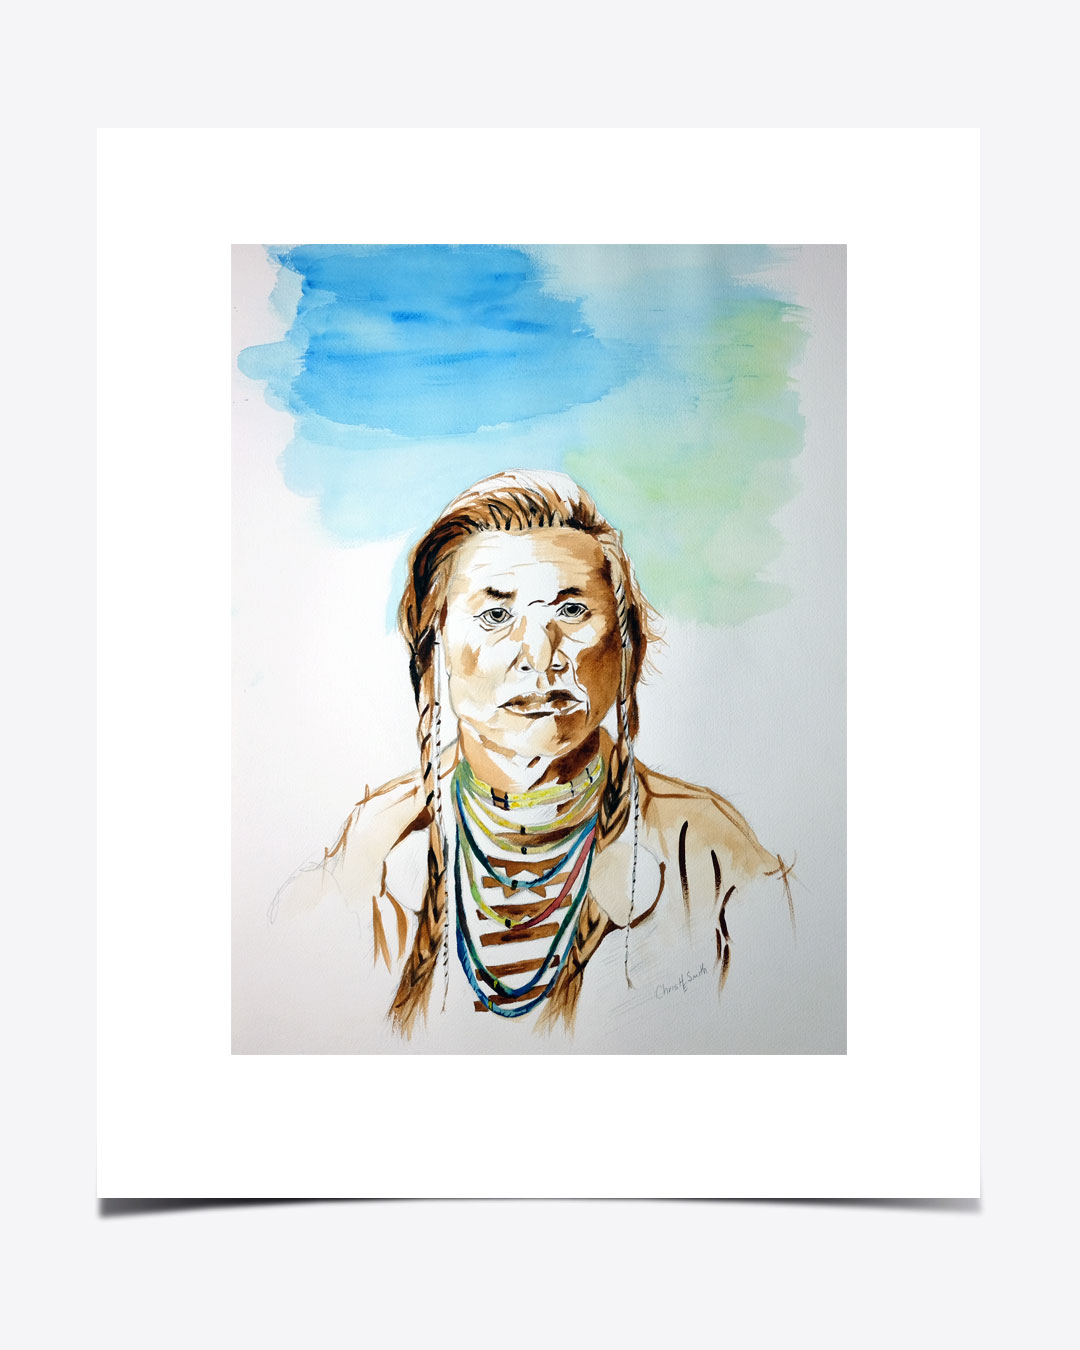 Native-American-Portrait-Water-Color-on-Paper-URBANE-MUSE-CHRIS-SMITH